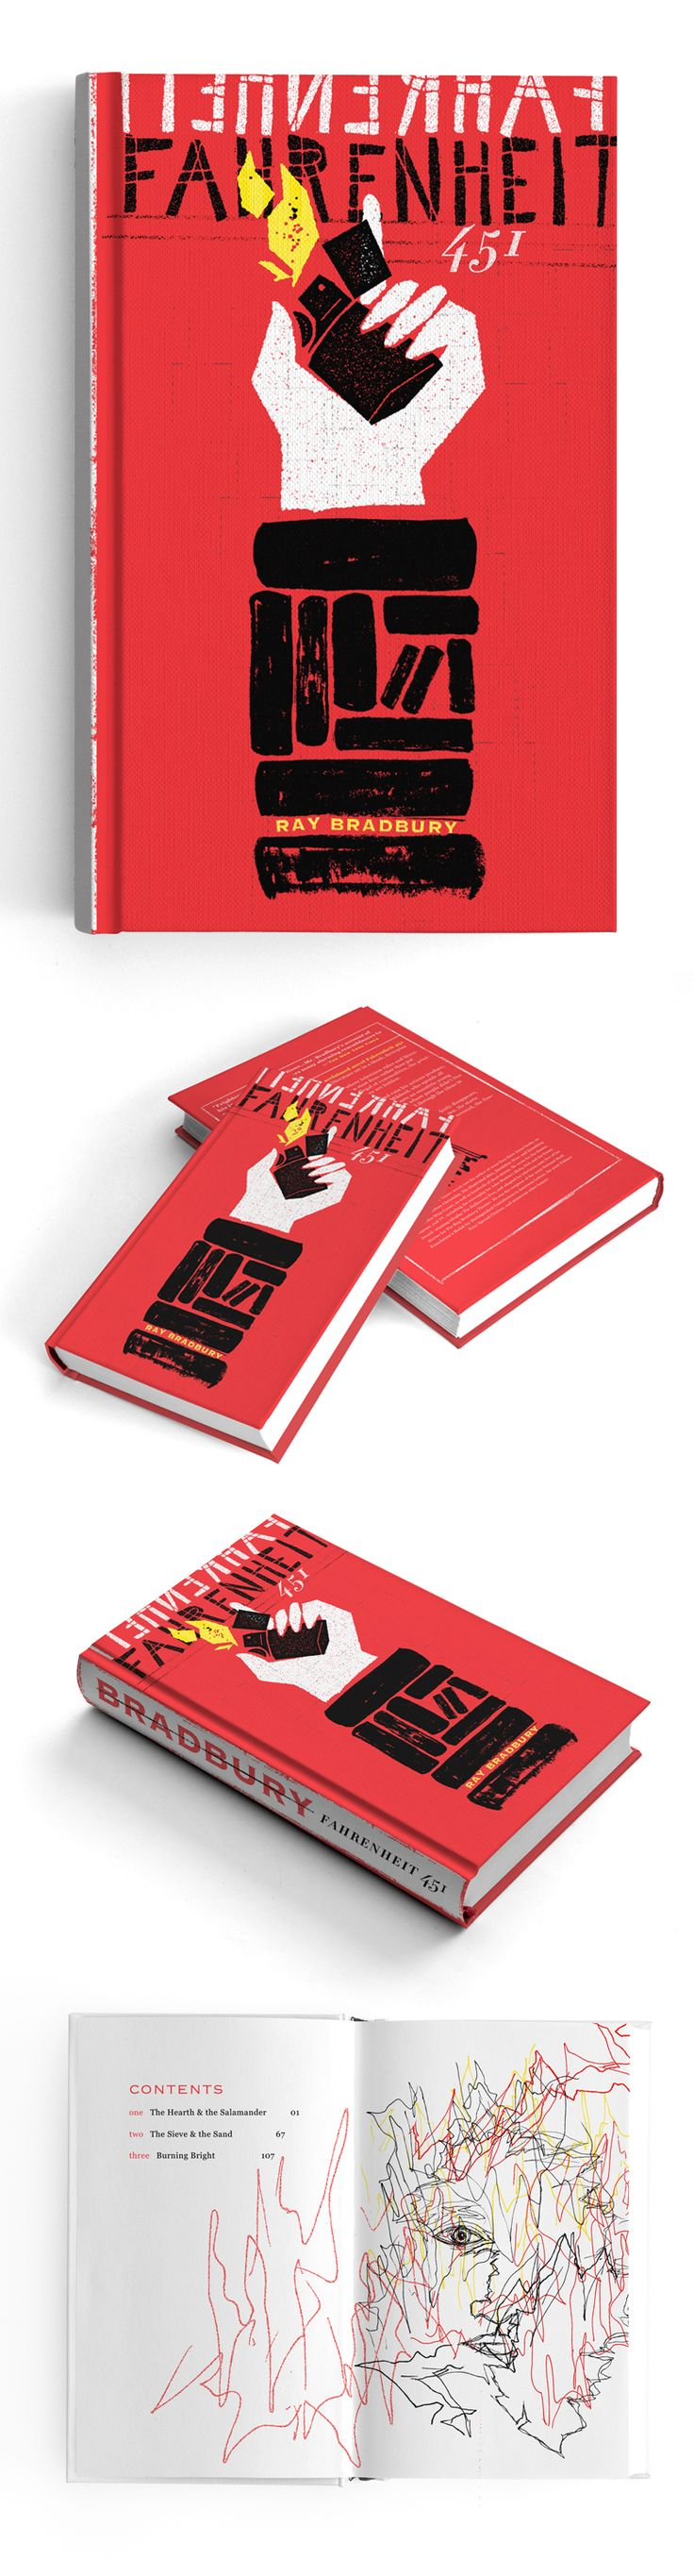 Adam Maida wins the 'Fahrenheit 451' Re-Covered Books contest